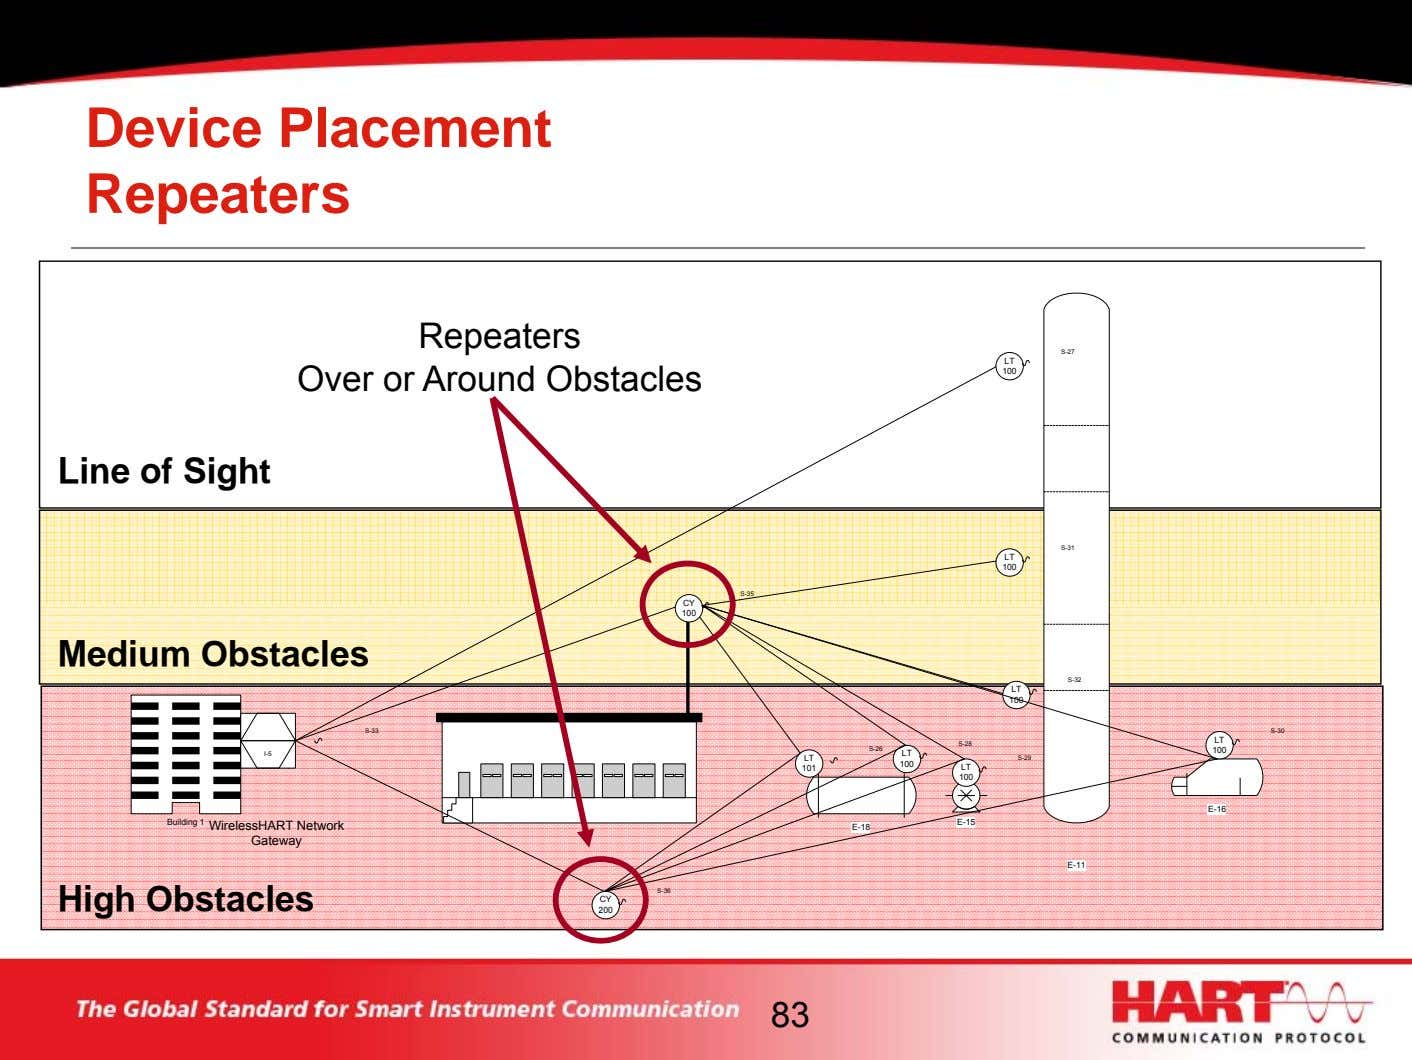 Device Placement Repeaters Repeaters Over or Around Obstacles S-27 LT 100 Line of Sight S-31